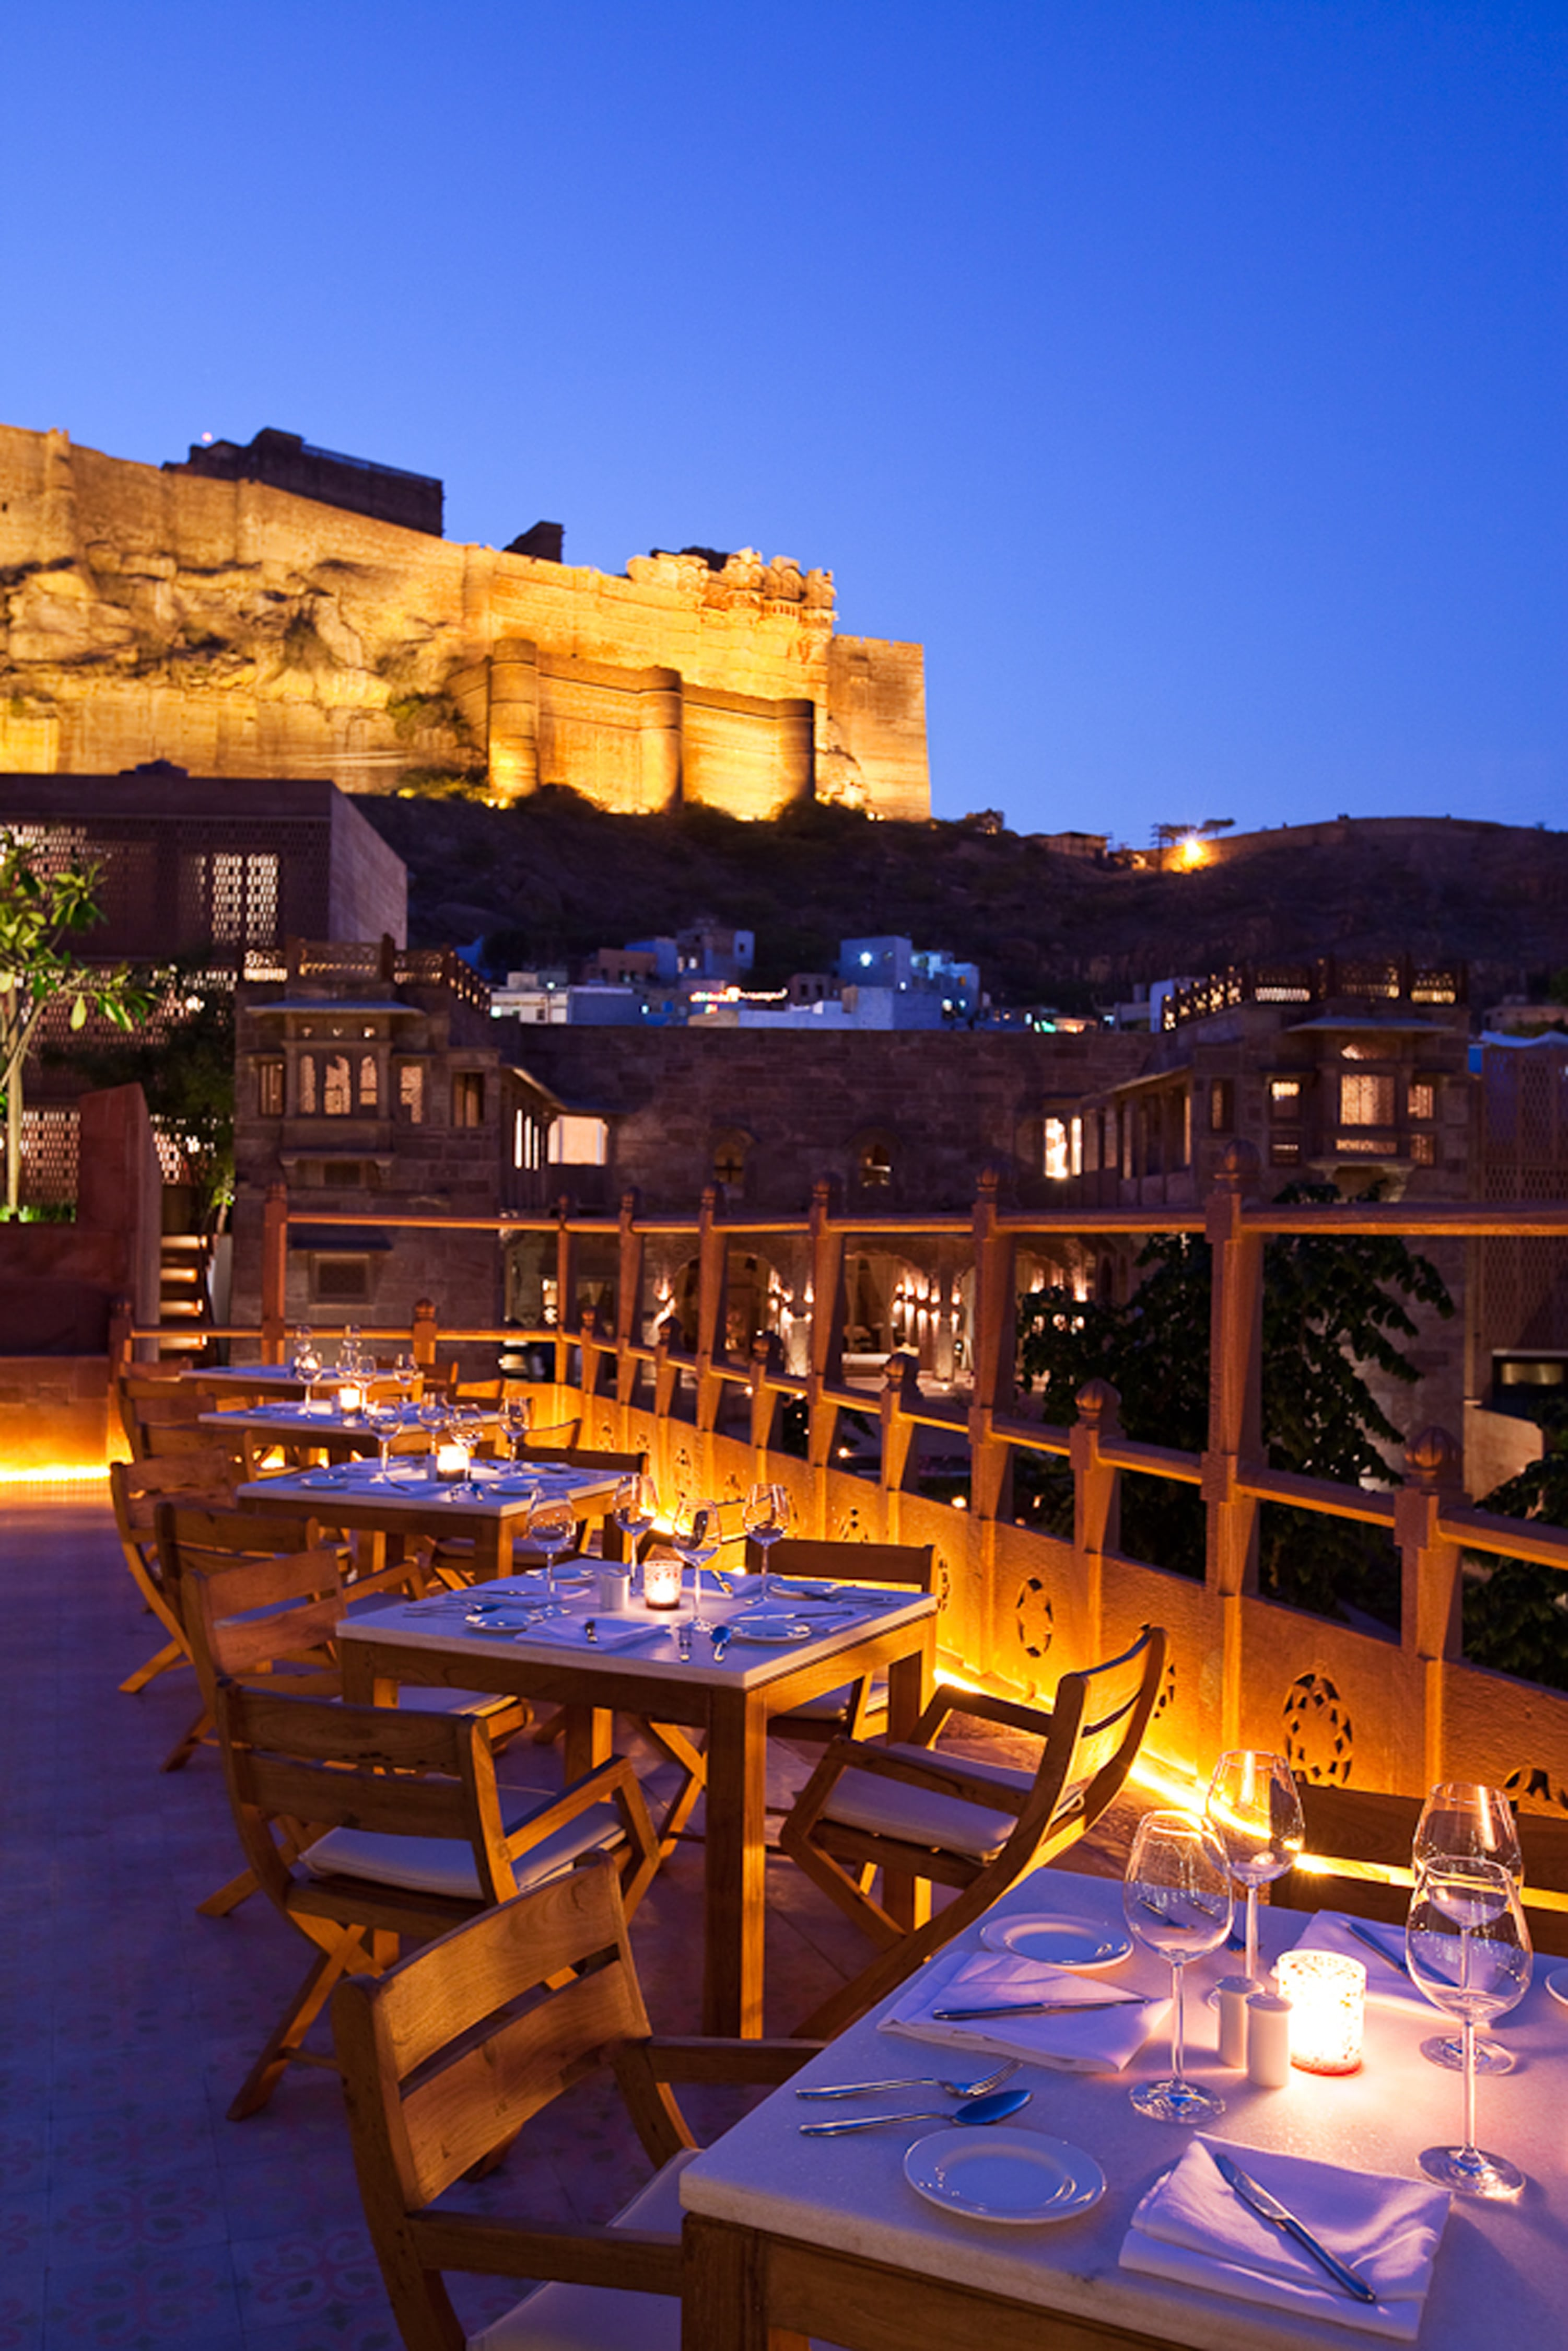 Darikhana Restaurant Outdoor raas hotel india-min